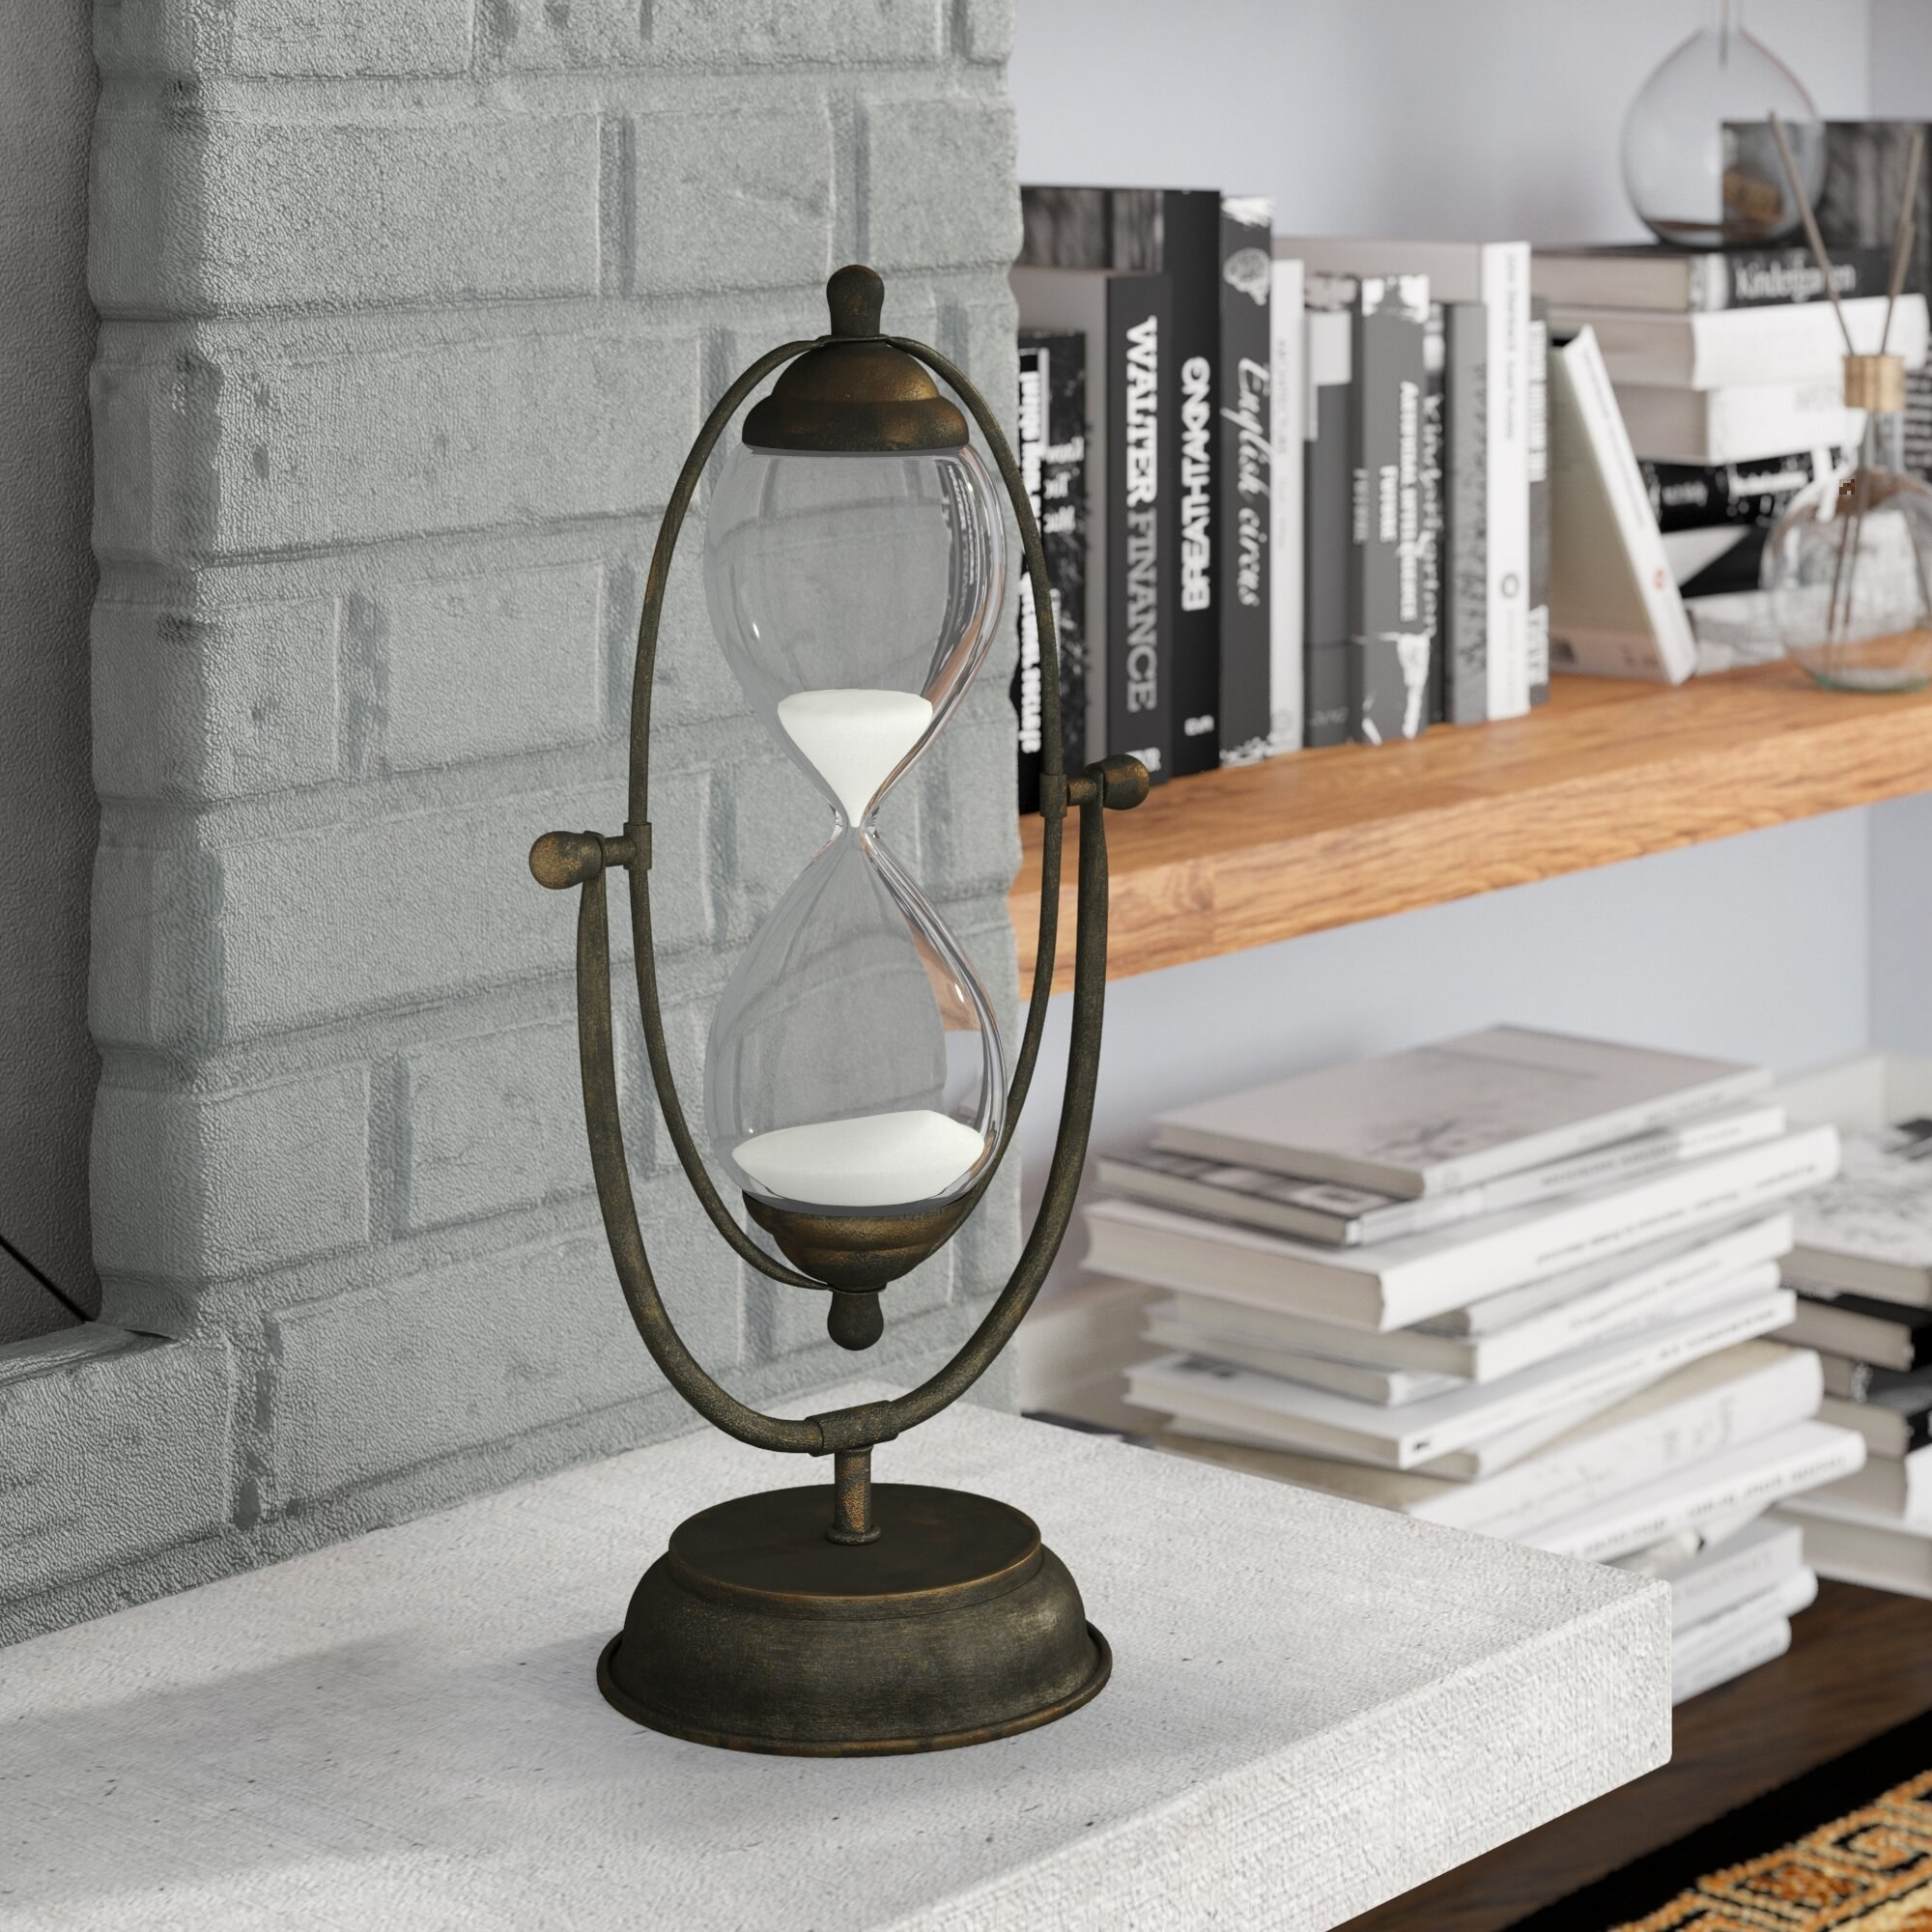 A big hourglass decoration next to a bookcase in front of a fireplace